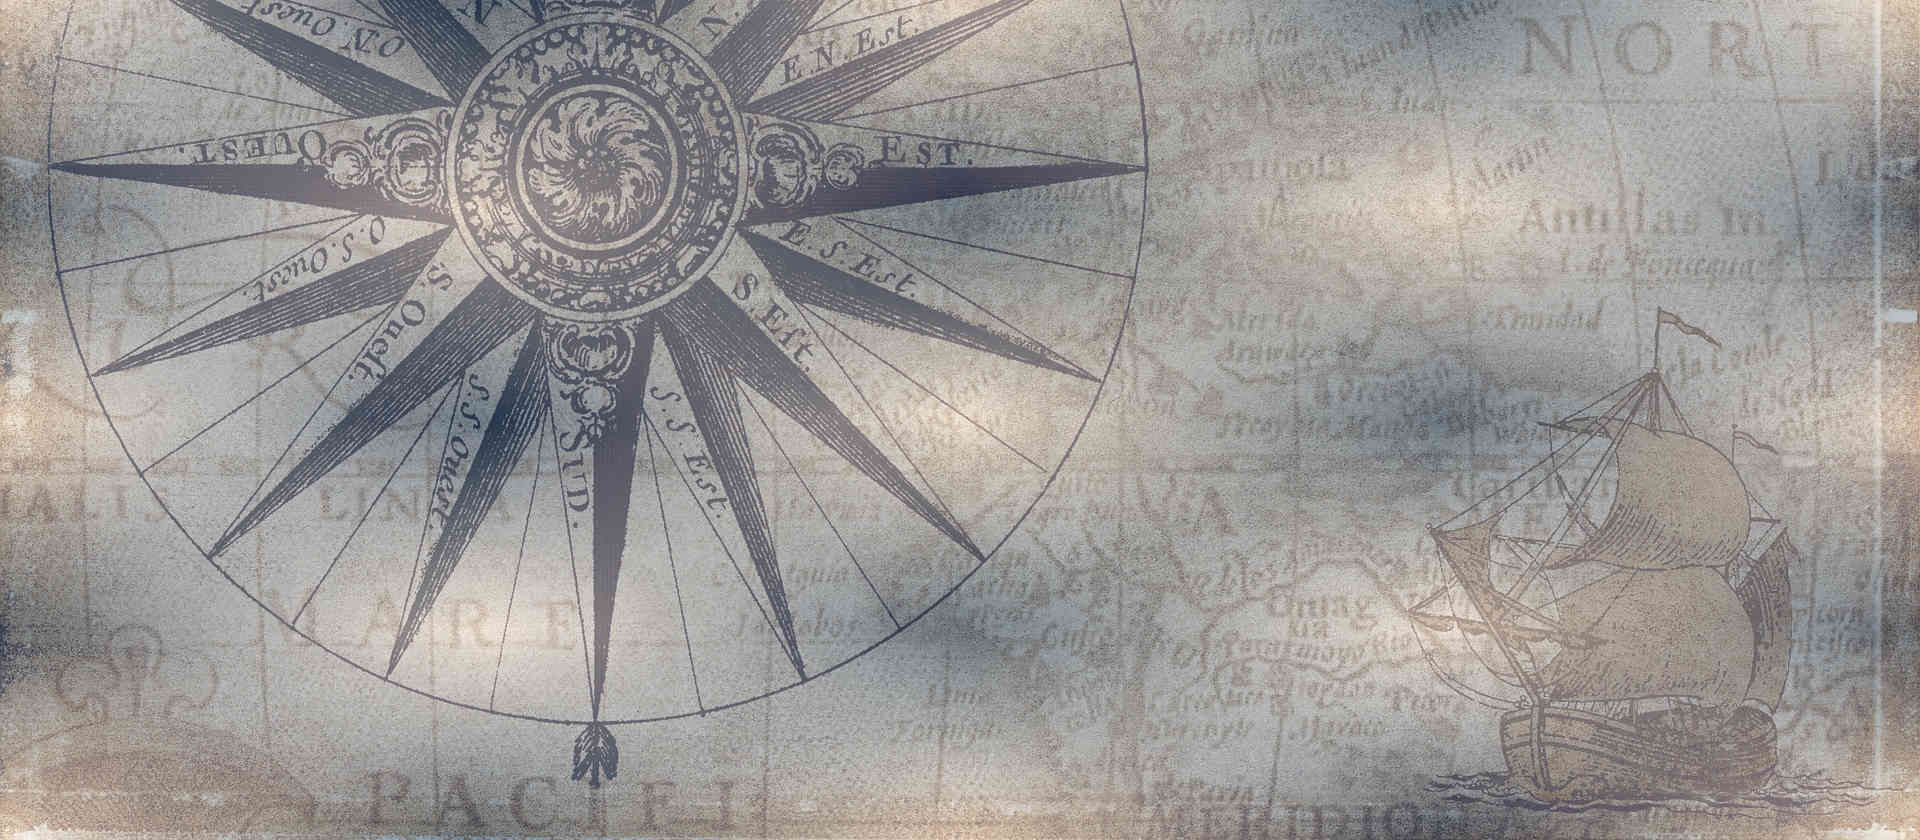 compass rose on old map